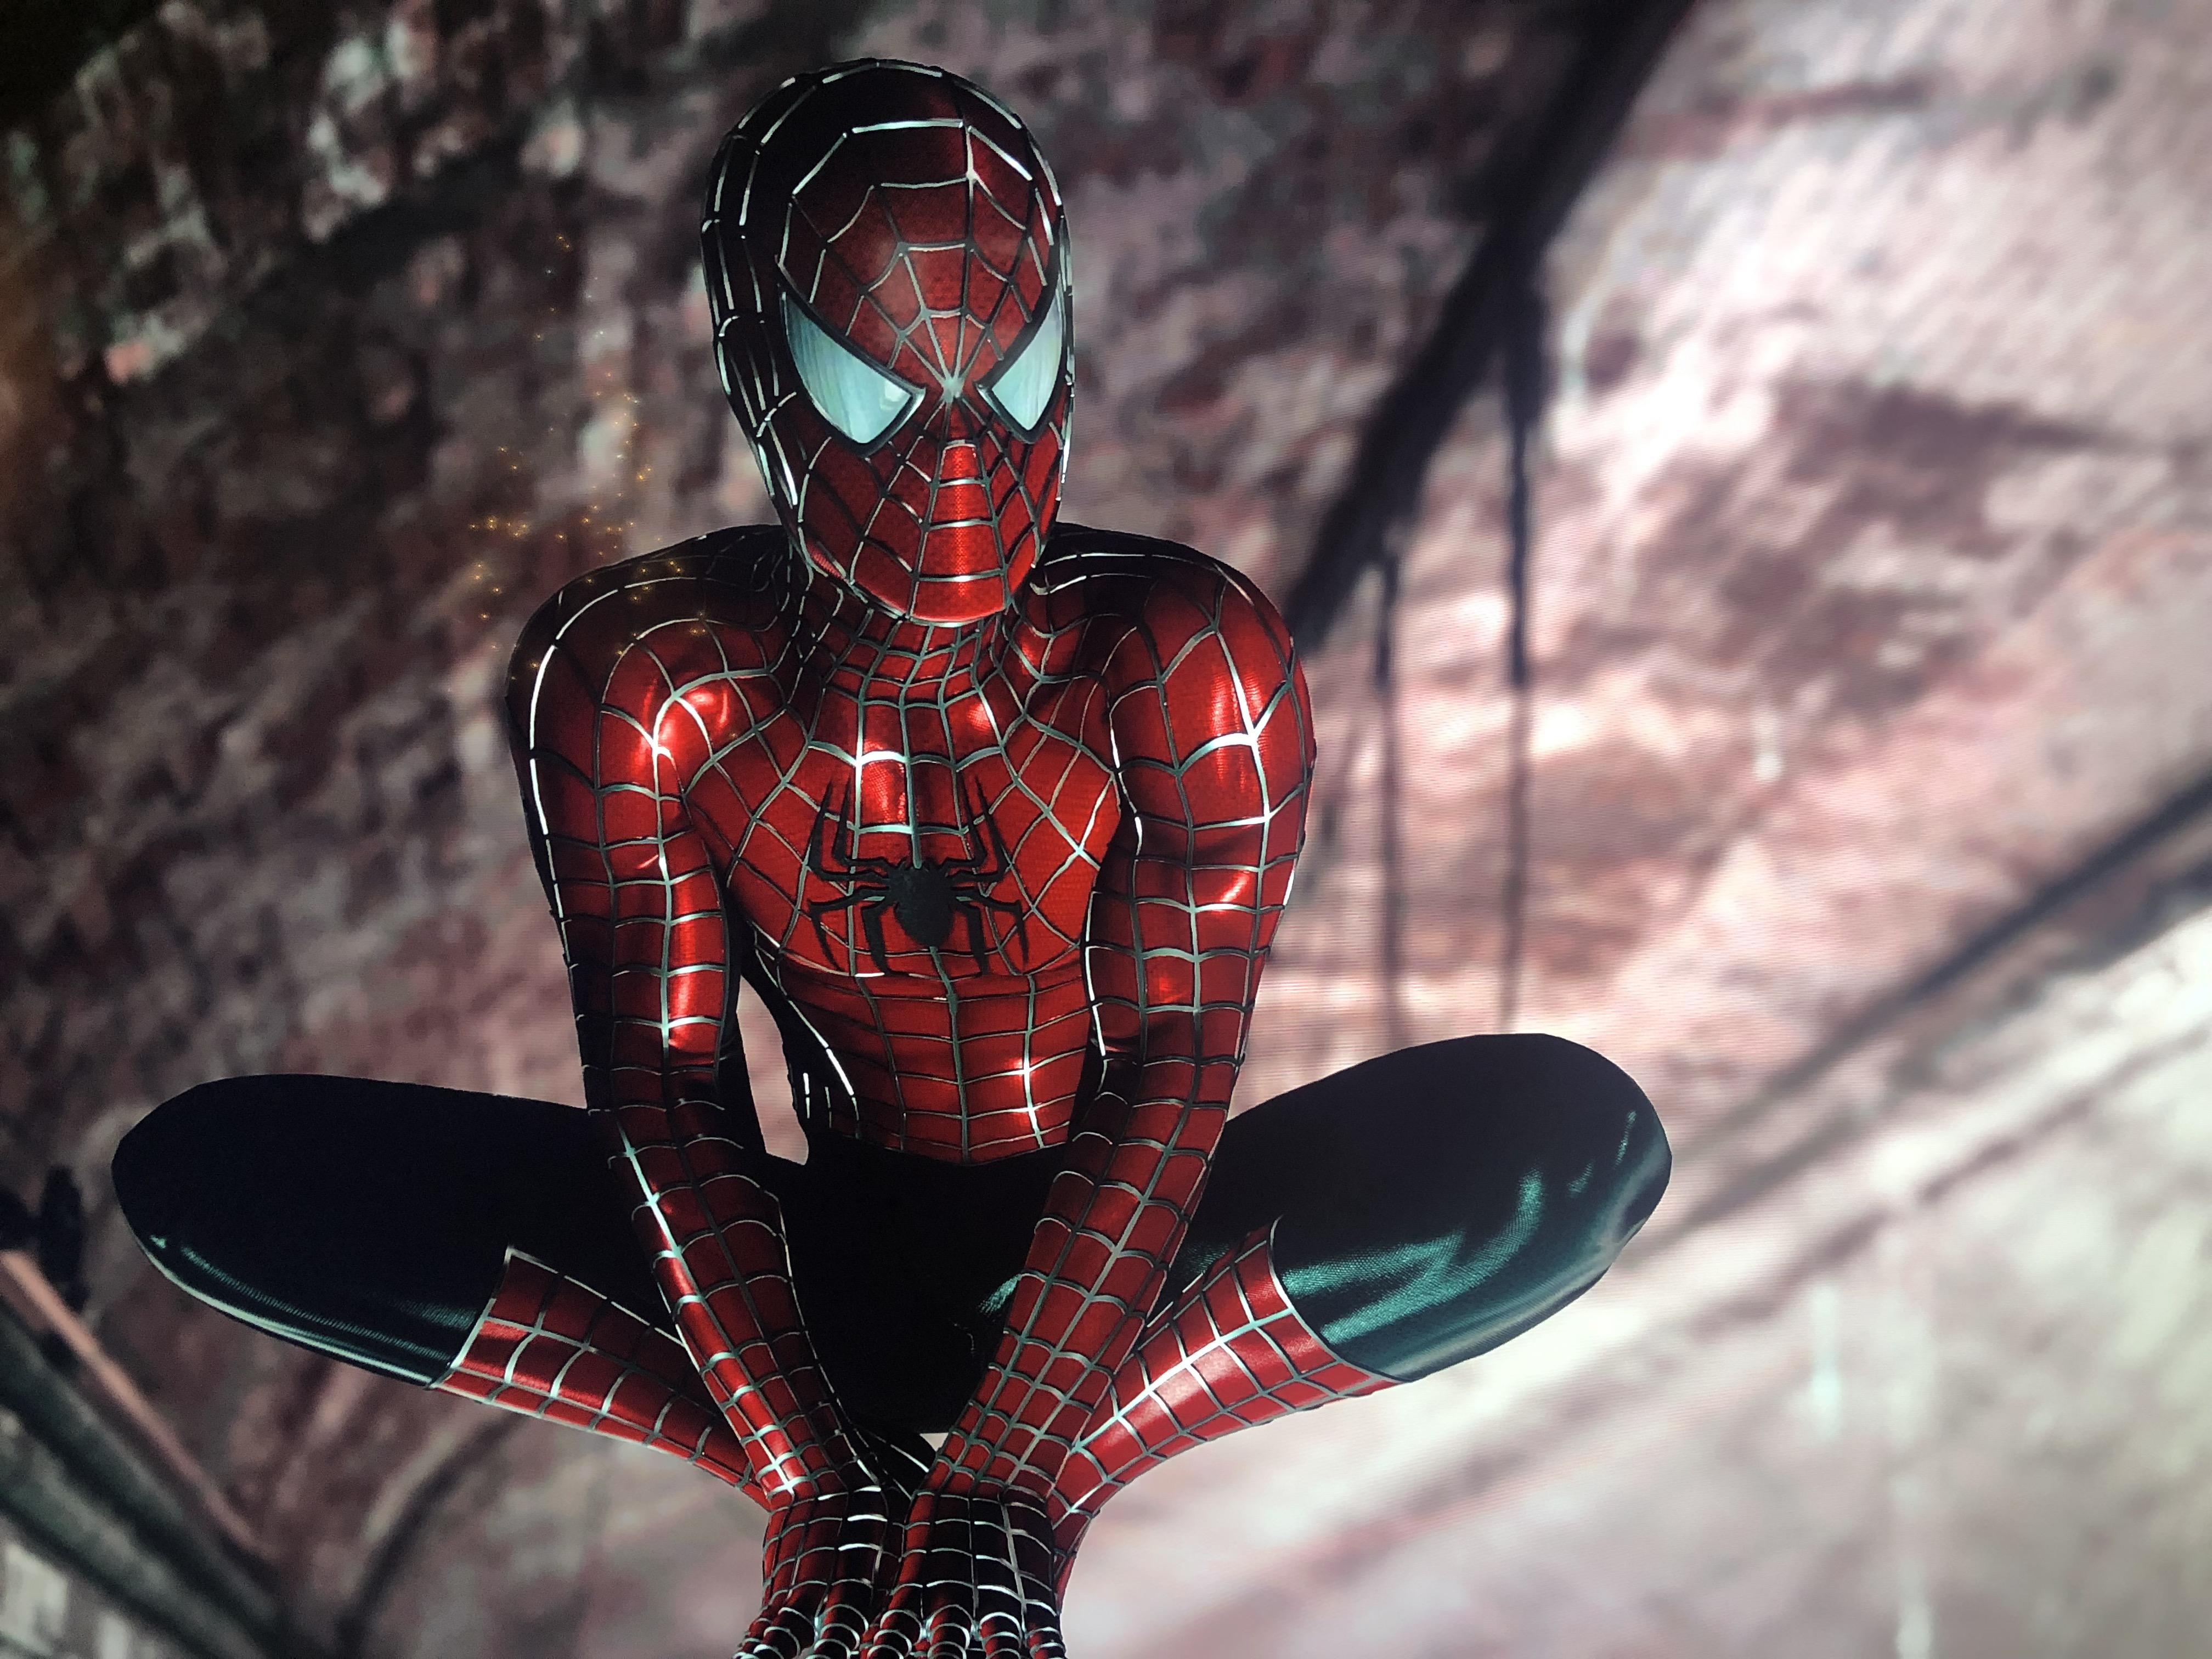 Spiderman PS4 Pro4k 2019, HD Games, 4k Wallpapers, Images ...